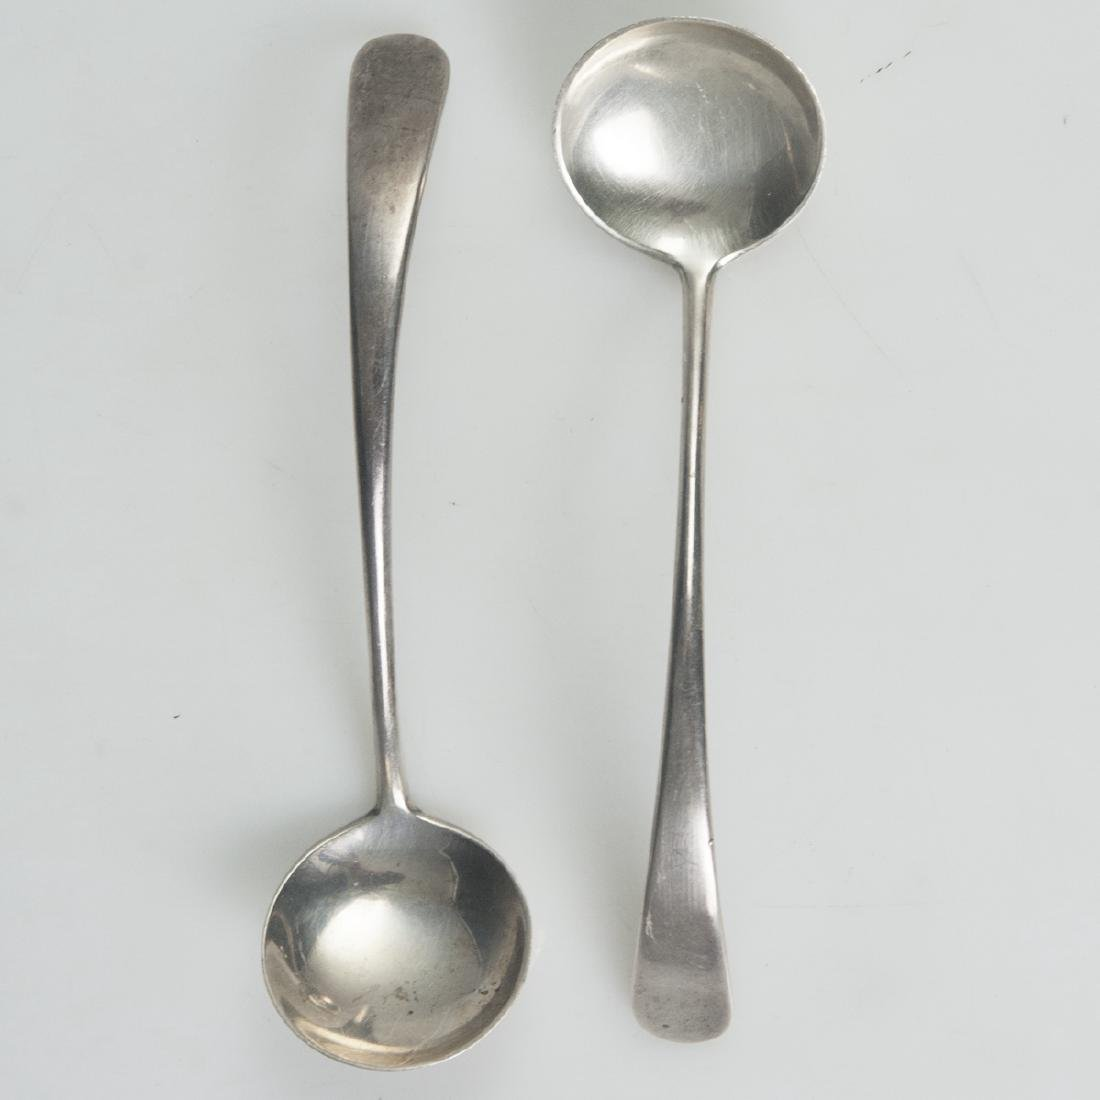 R. Blackinton & Co. Sterling Spoons